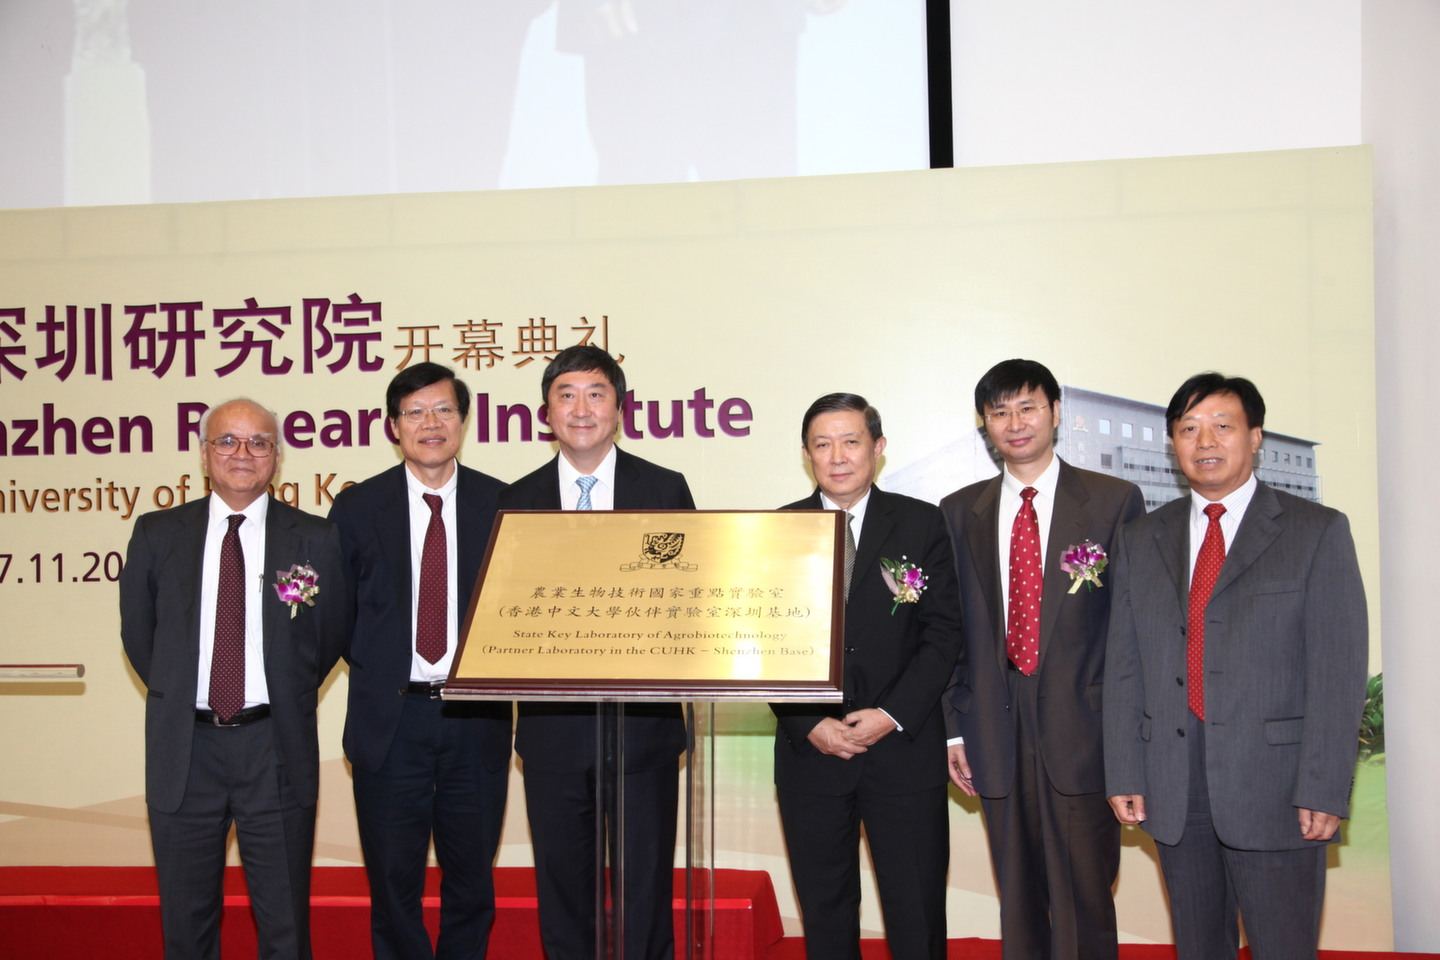 Opening Ceremony of CUHK Shenzhen Research Institute (2011)